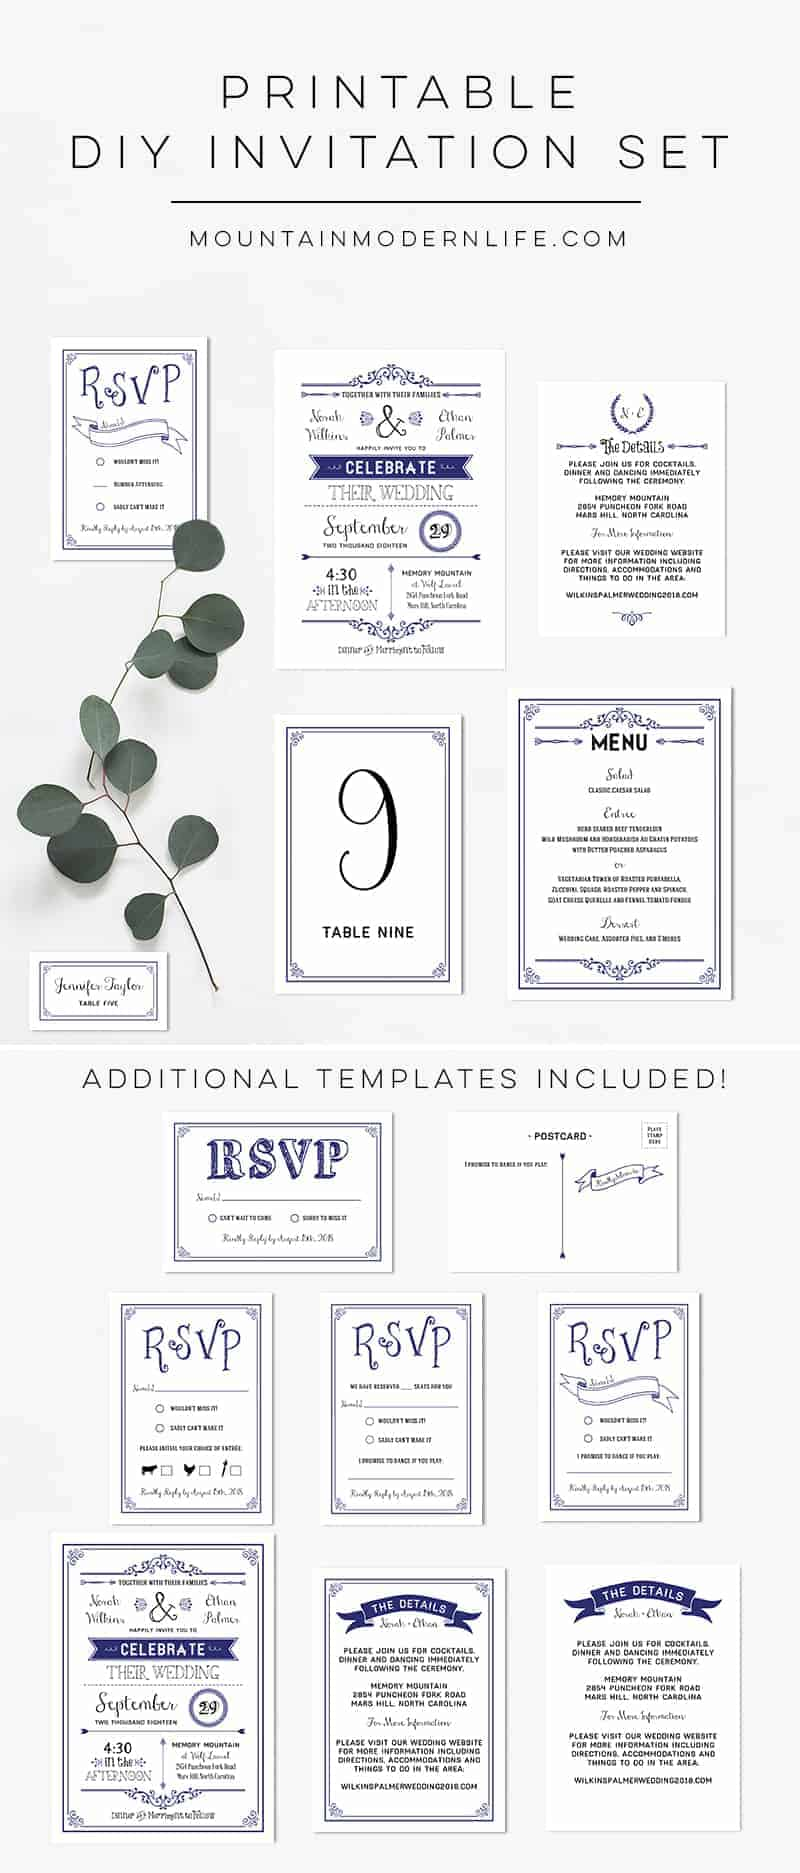 Planning a rustic or vintage-inspired wedding? Instantly download this Printable Navy Wedding Invitation Set and print as many copies as you need!